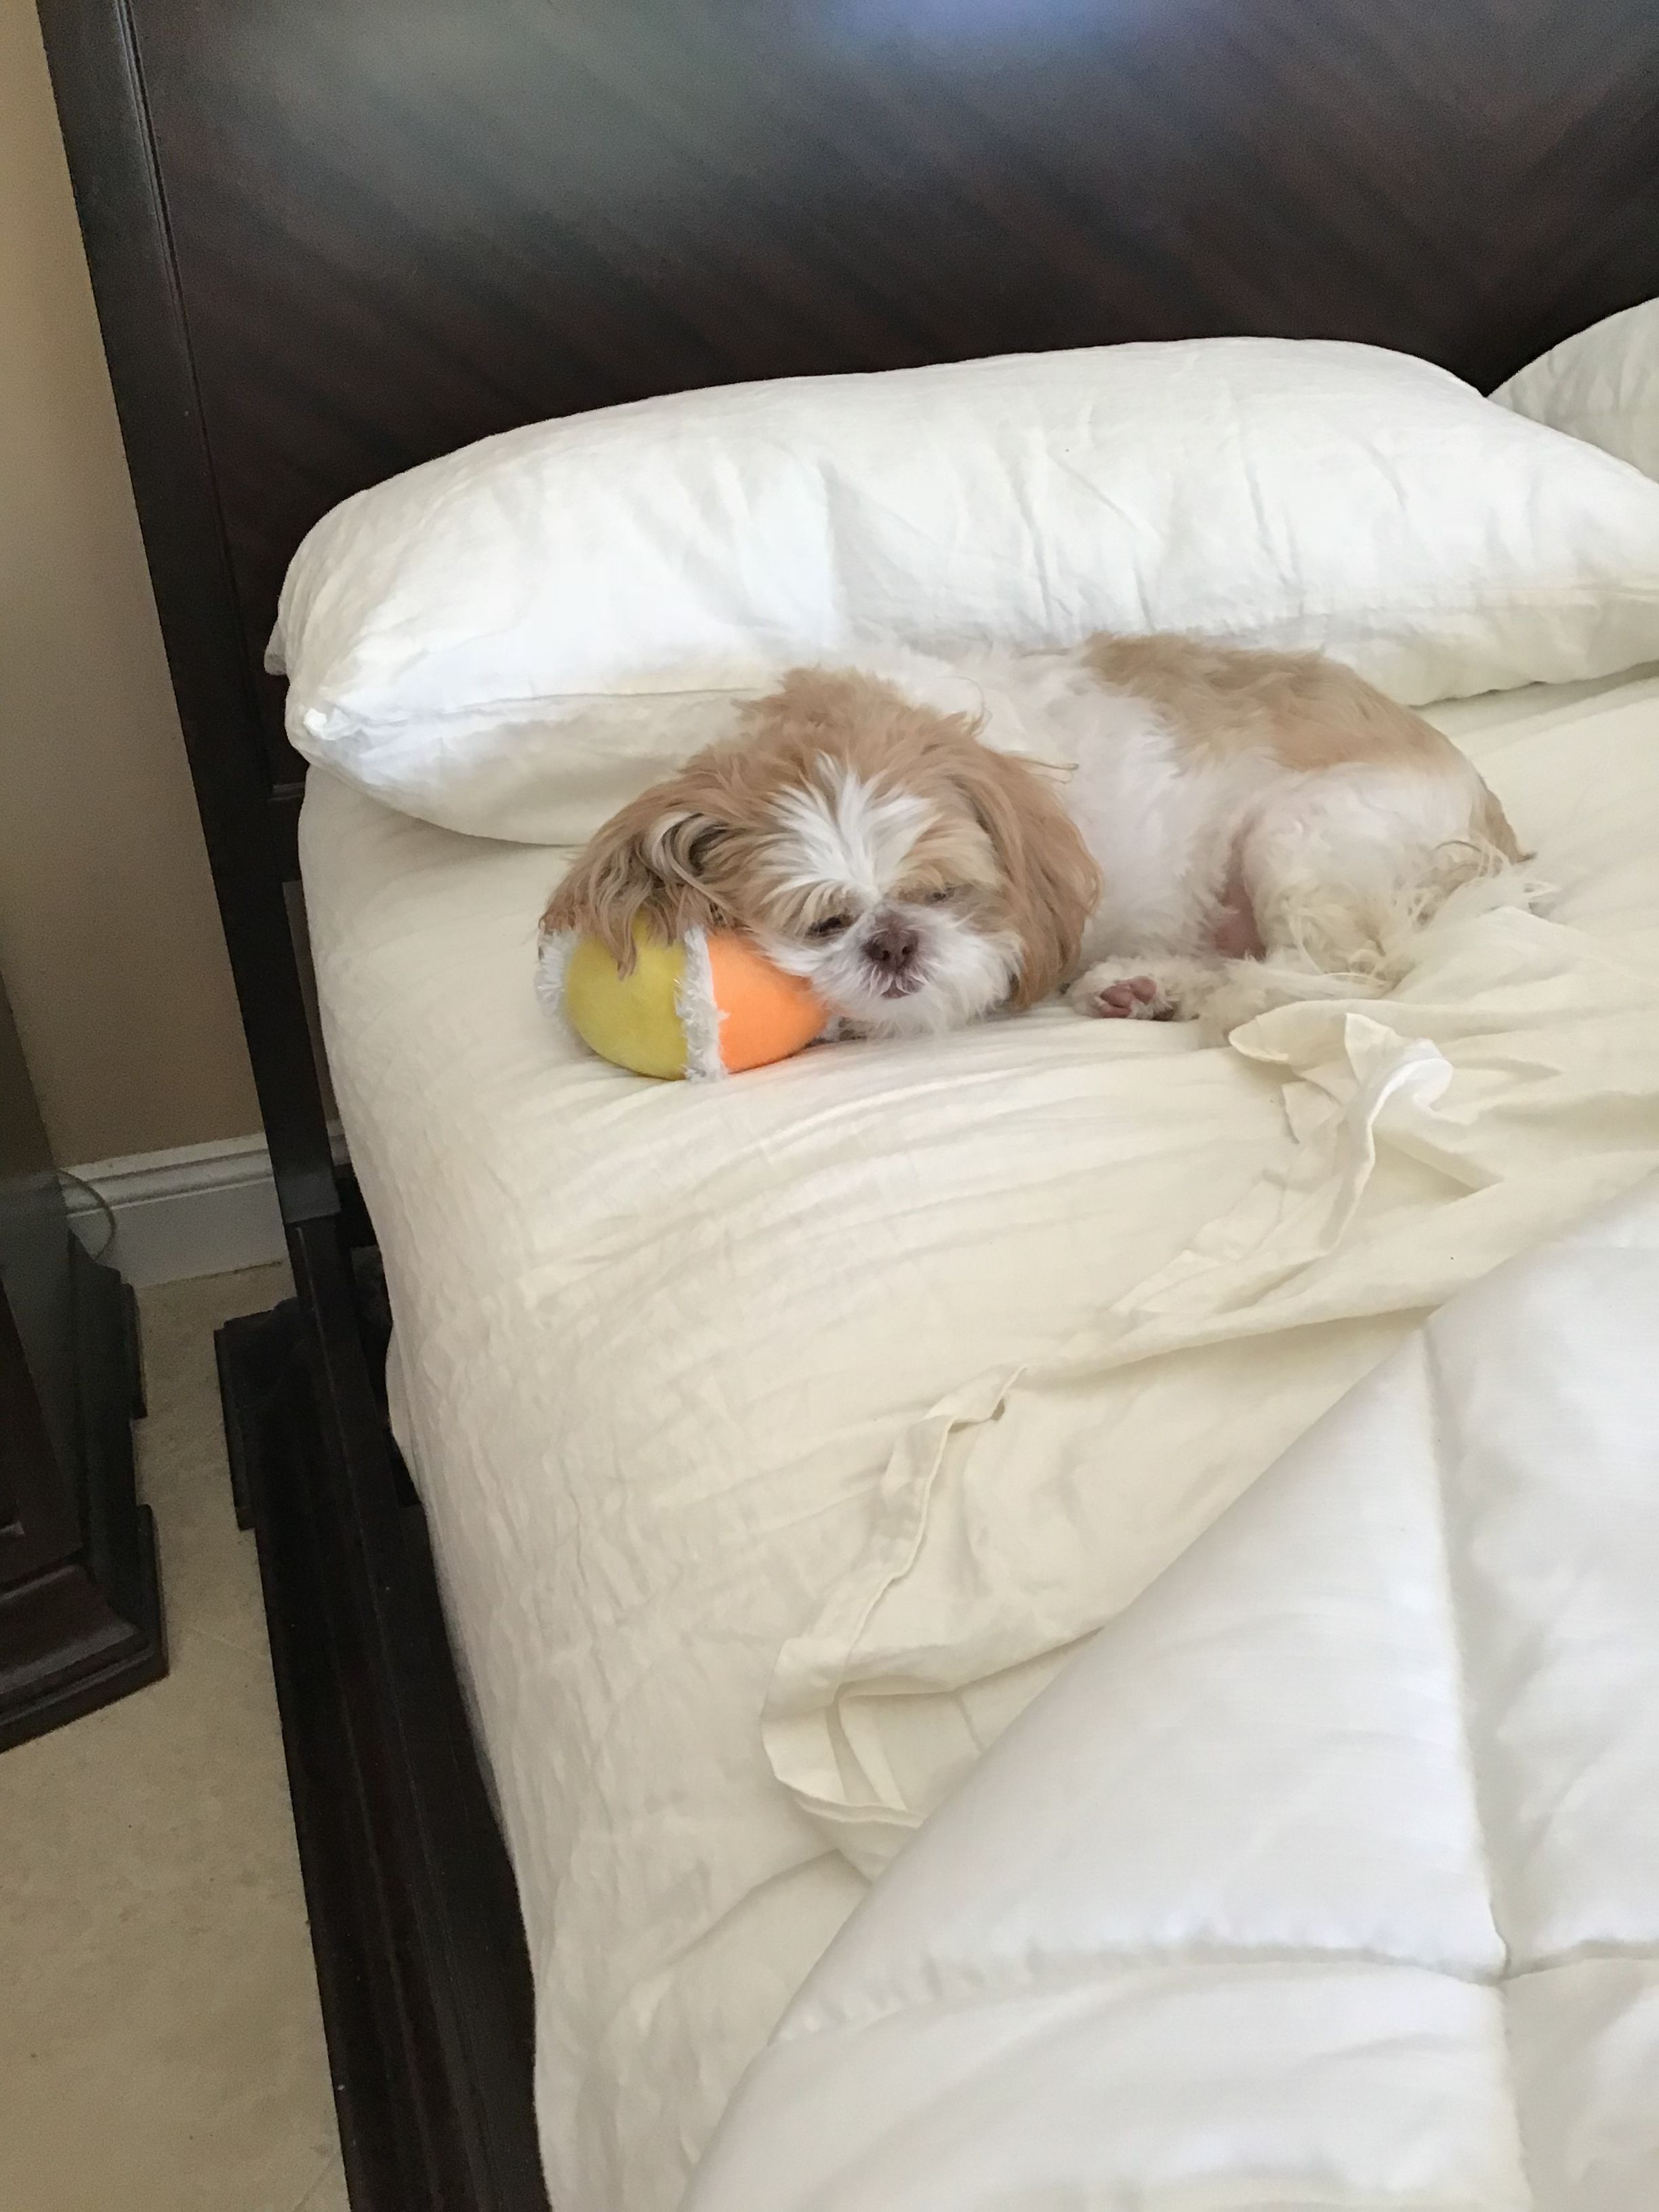 Pin by Mb on Shih Tzu...Starring Holly (With images